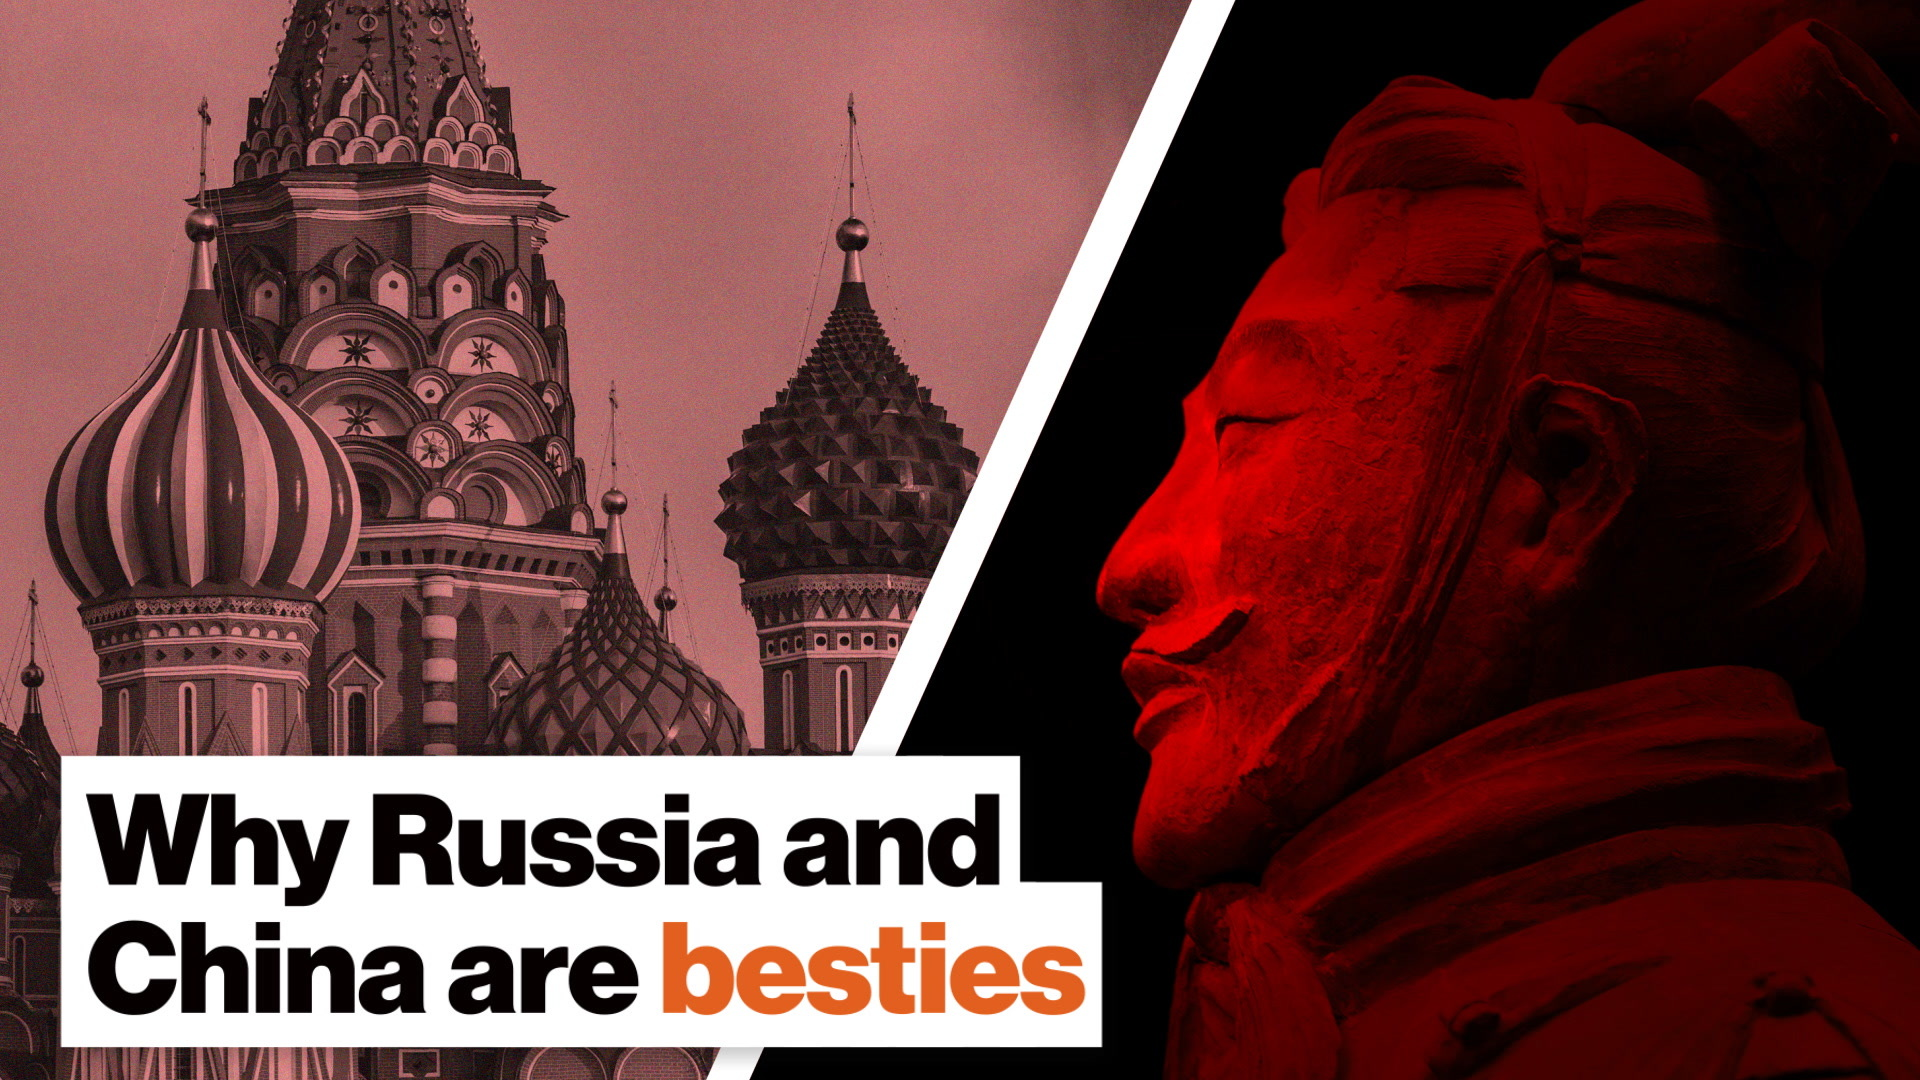 Why Russia and China are besties